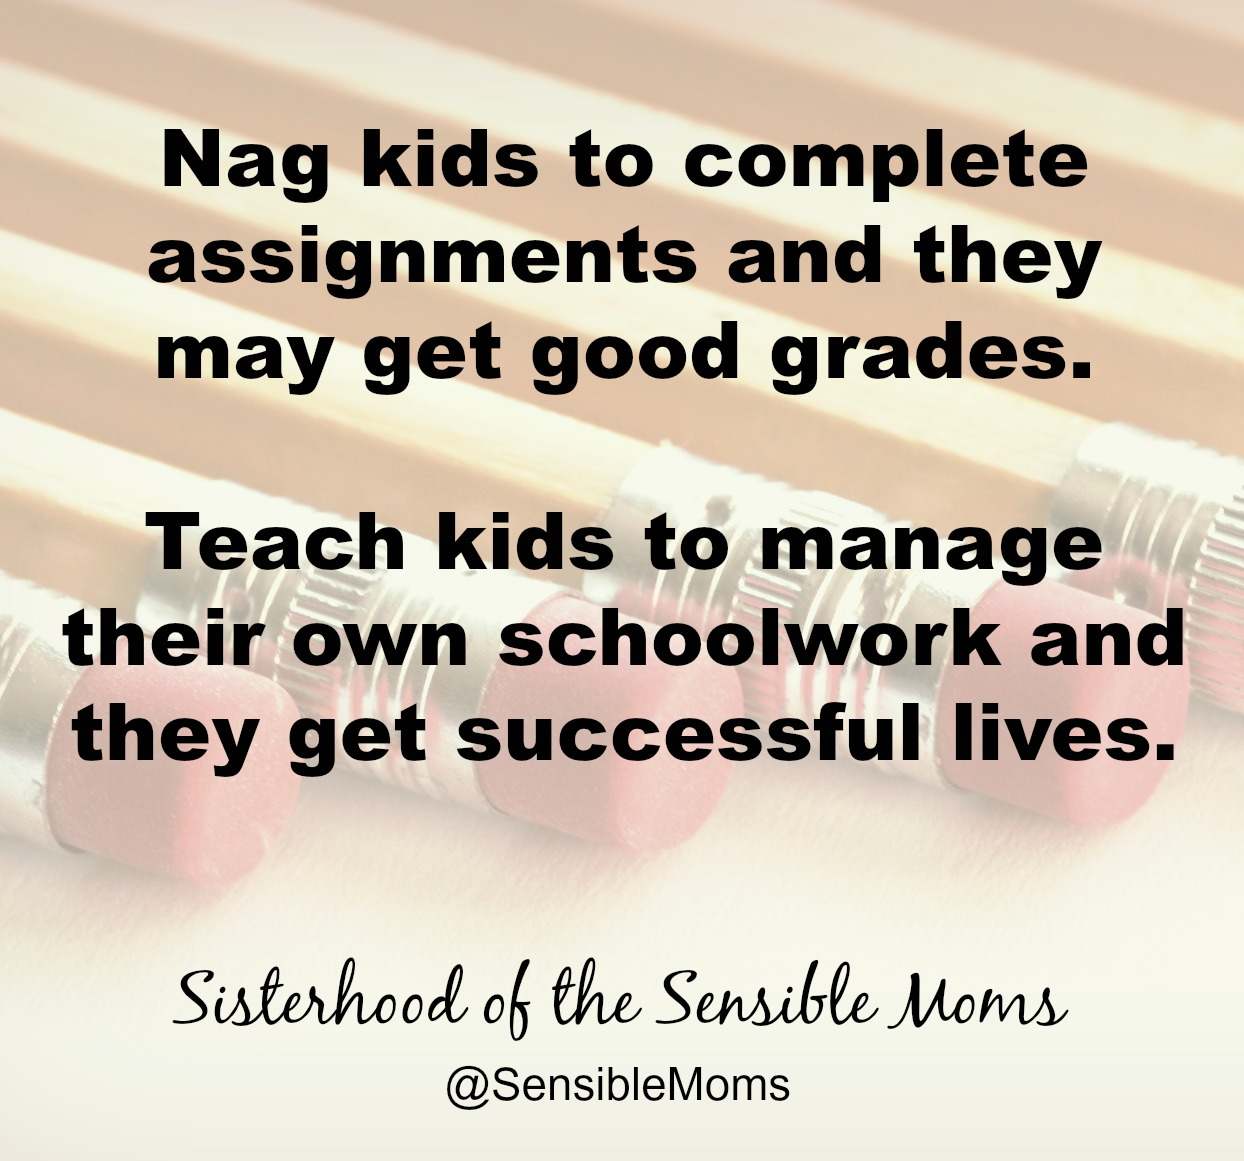 Practical tips for how to teach kids to take responsibility for their schoolwork. Before you stop hovering, you must teach them the skills to be self-sufficient. Think of it as giving them training wheels for responsibility. | Parenting | Sisterhood of the Sensible Moms